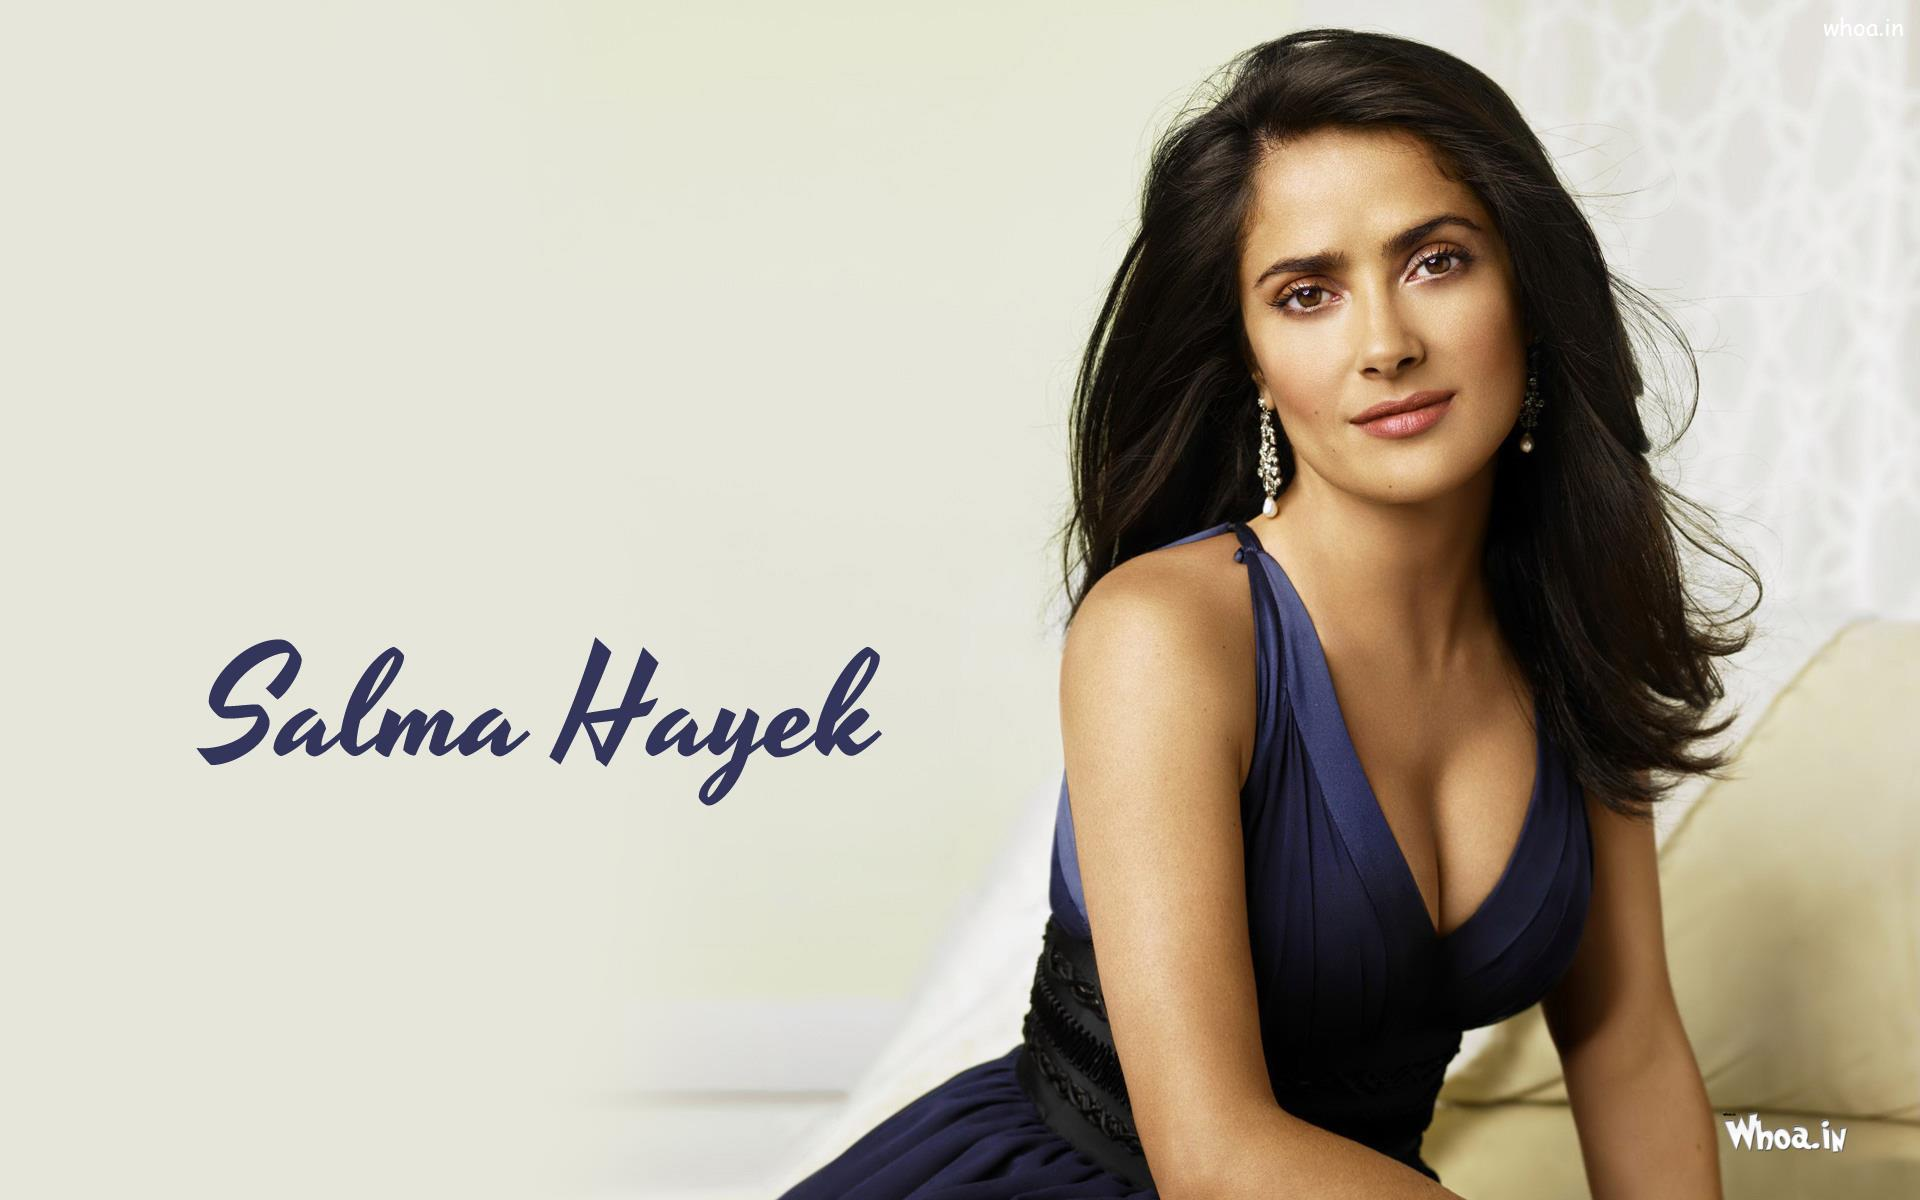 Salma Hayek Hollywood Actress Hot And Sexy Images And Pictures.